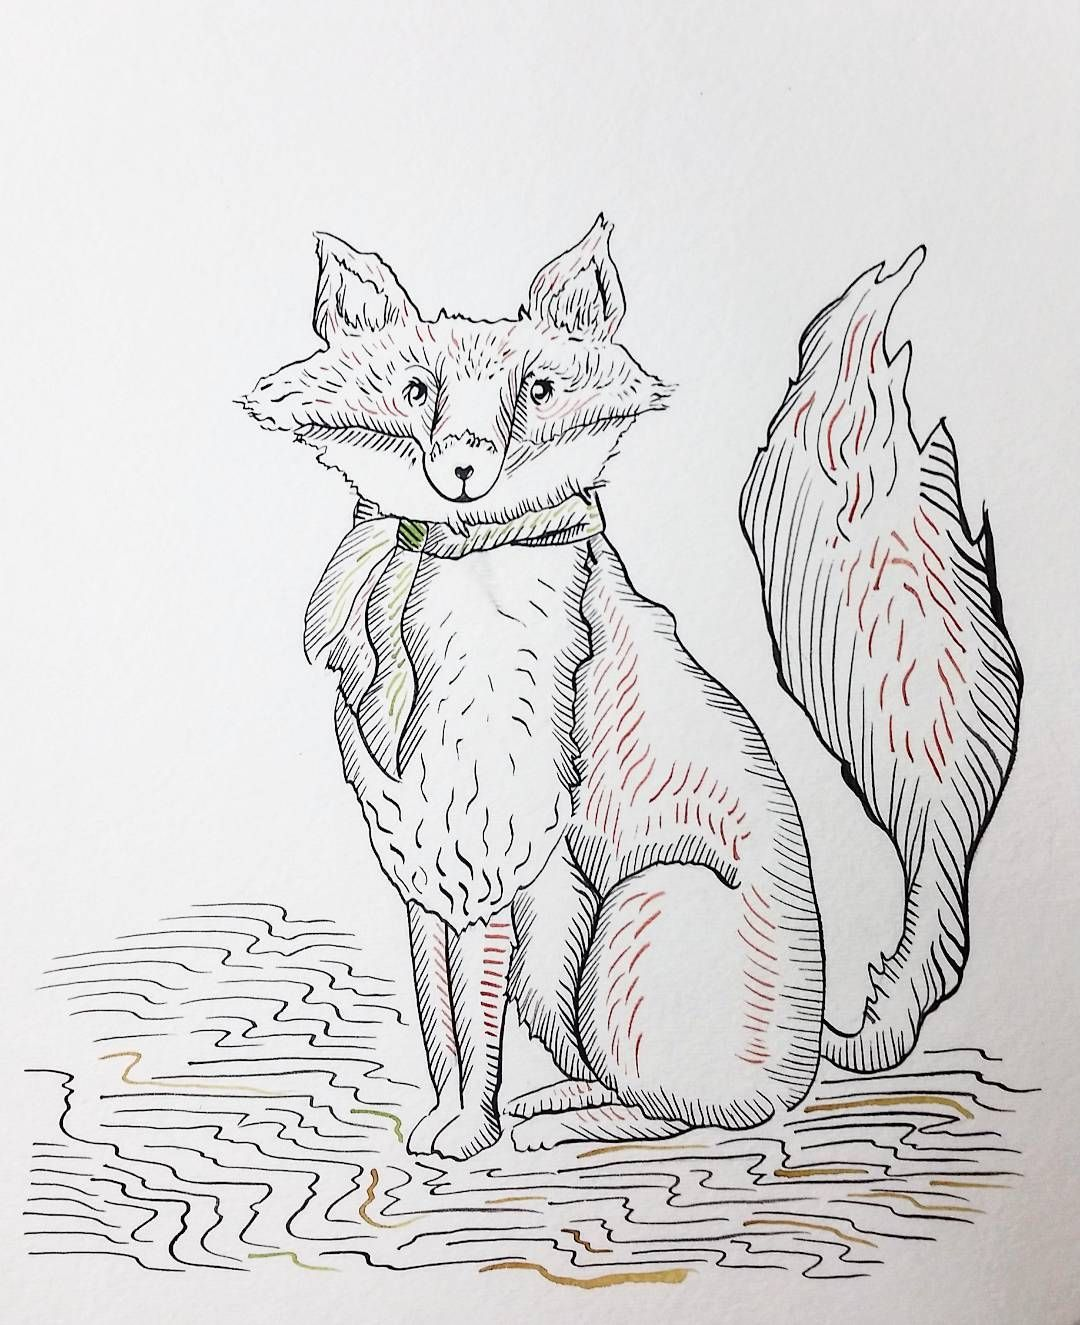 I now done with drawing for the semester so let's celebrate with a fox #paint #painting #illustration #drawing #line #watercolorpainting #fox #foxart#makemoreart #artwithfriends #artwork #artlife #arti#artwork by sarahdipity13